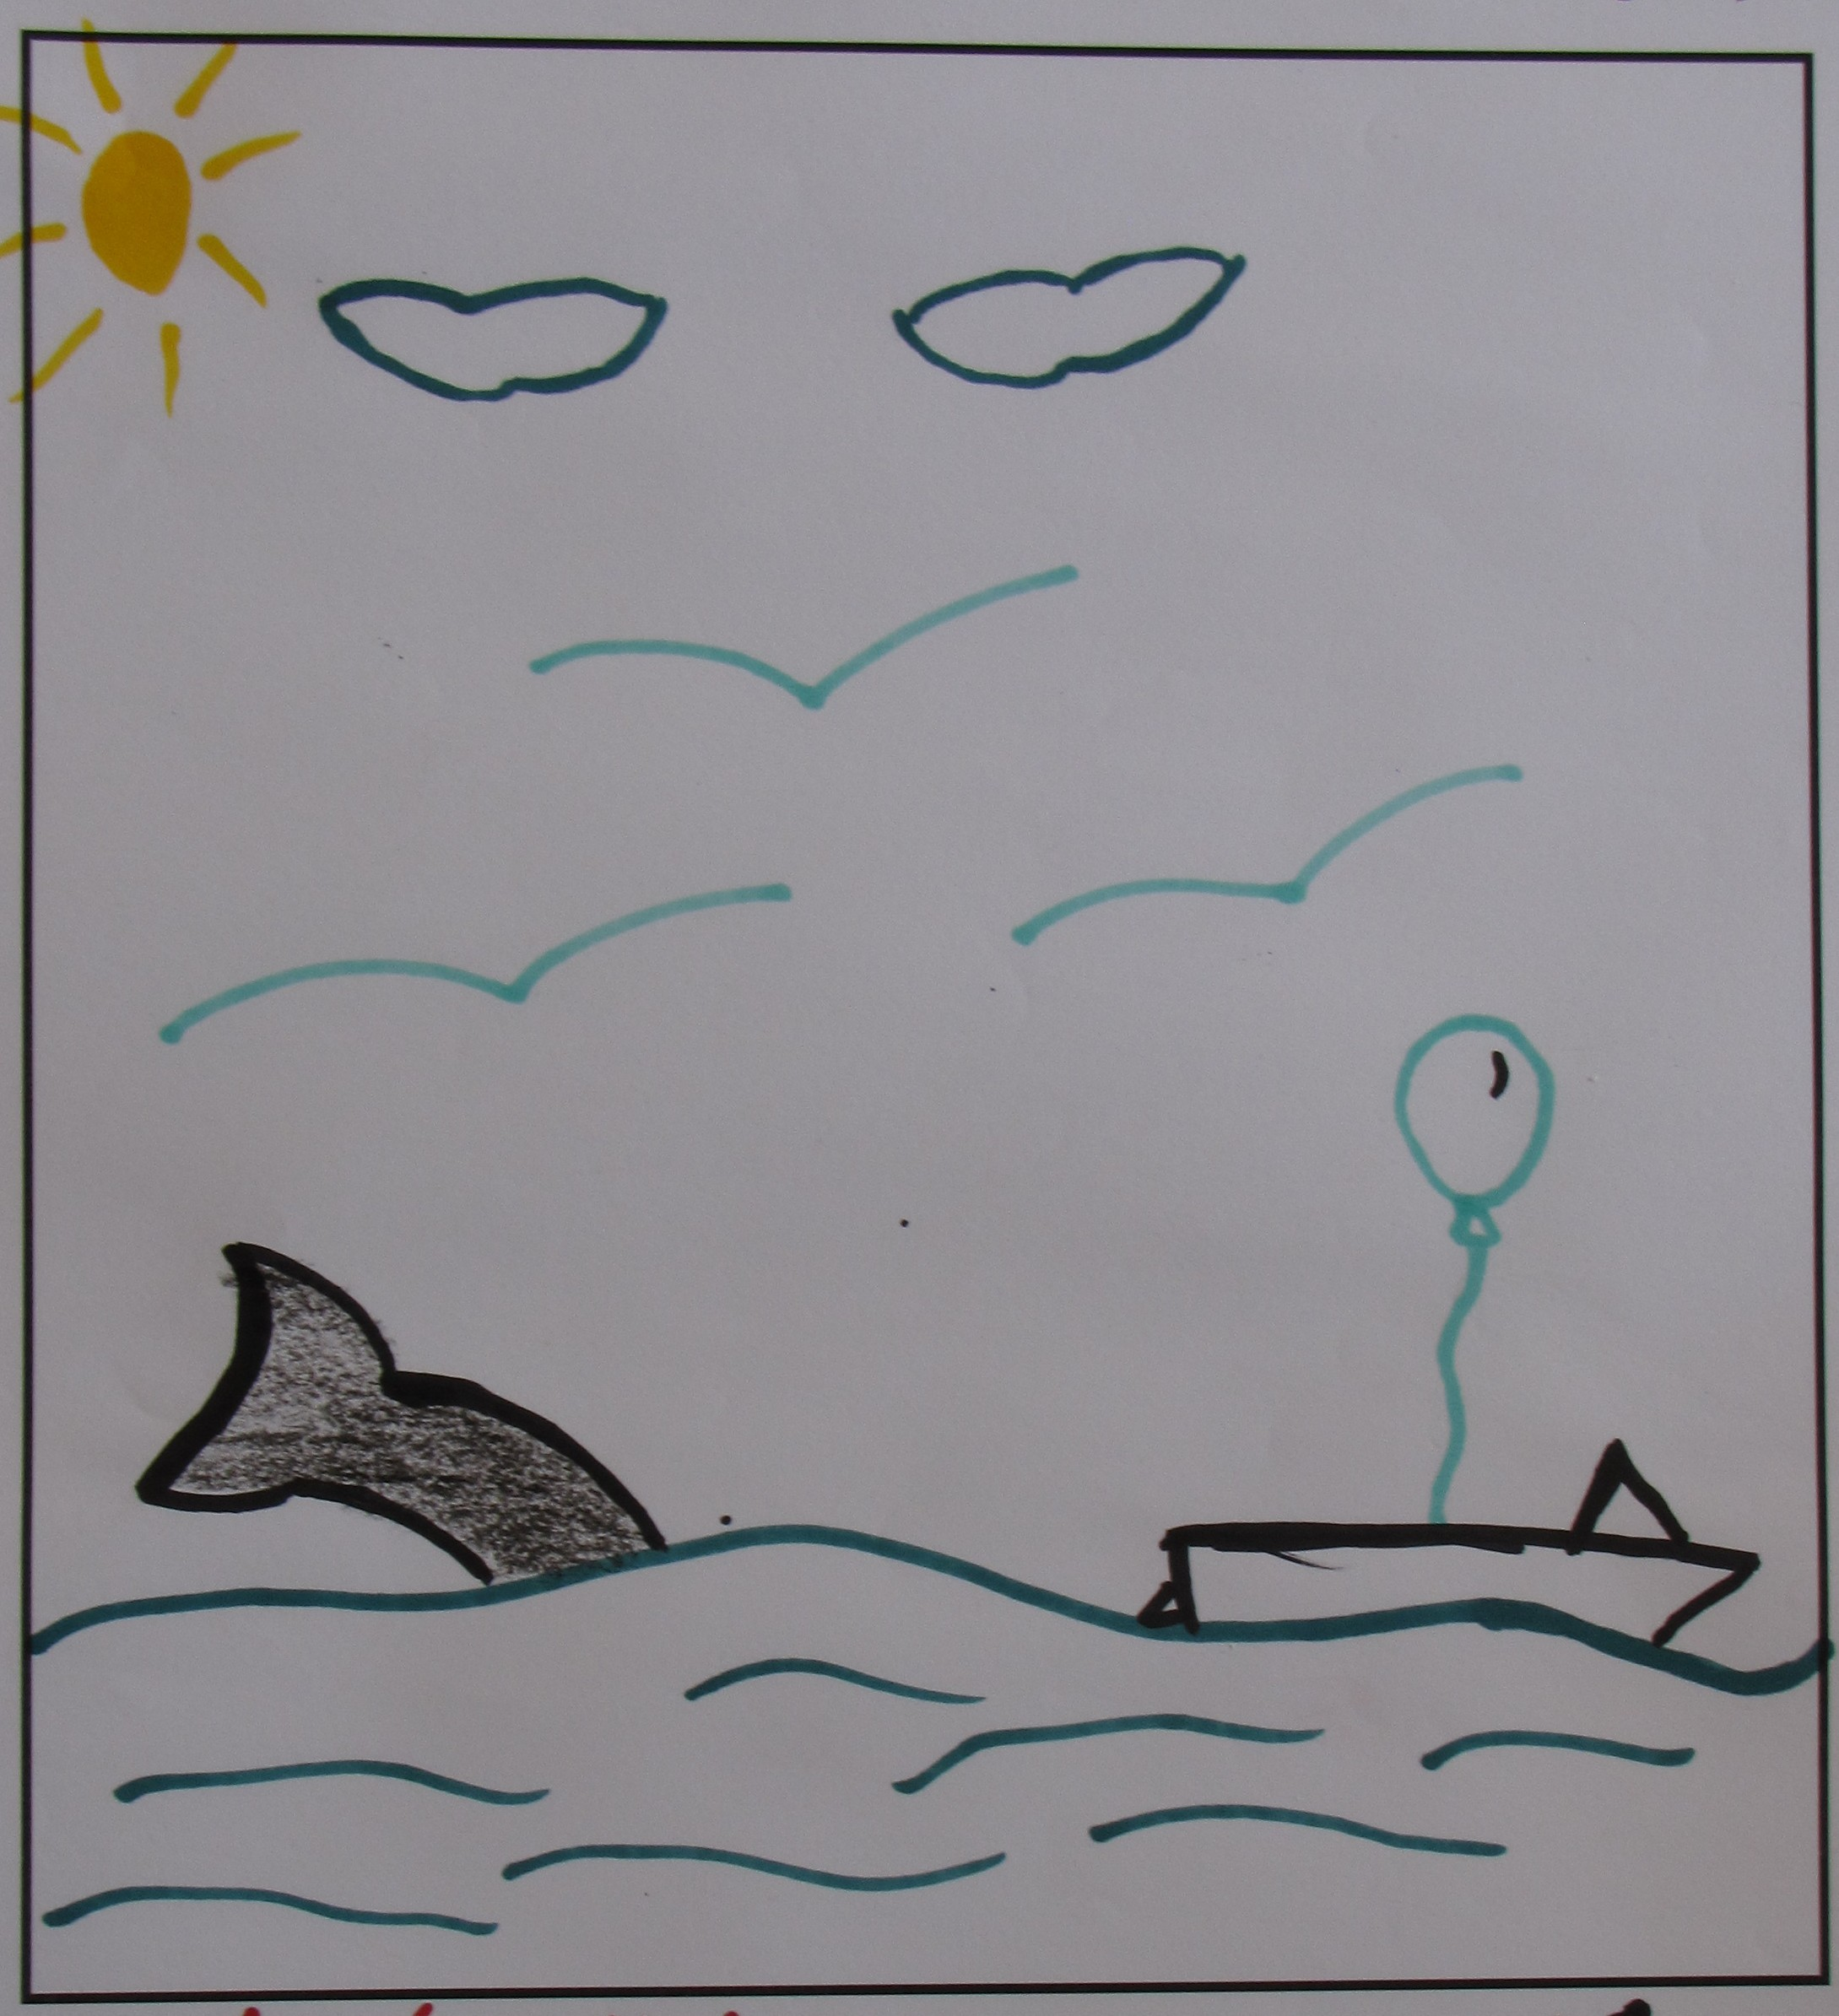 'Cool Whale' by Tredyn Kohm, Age 13.